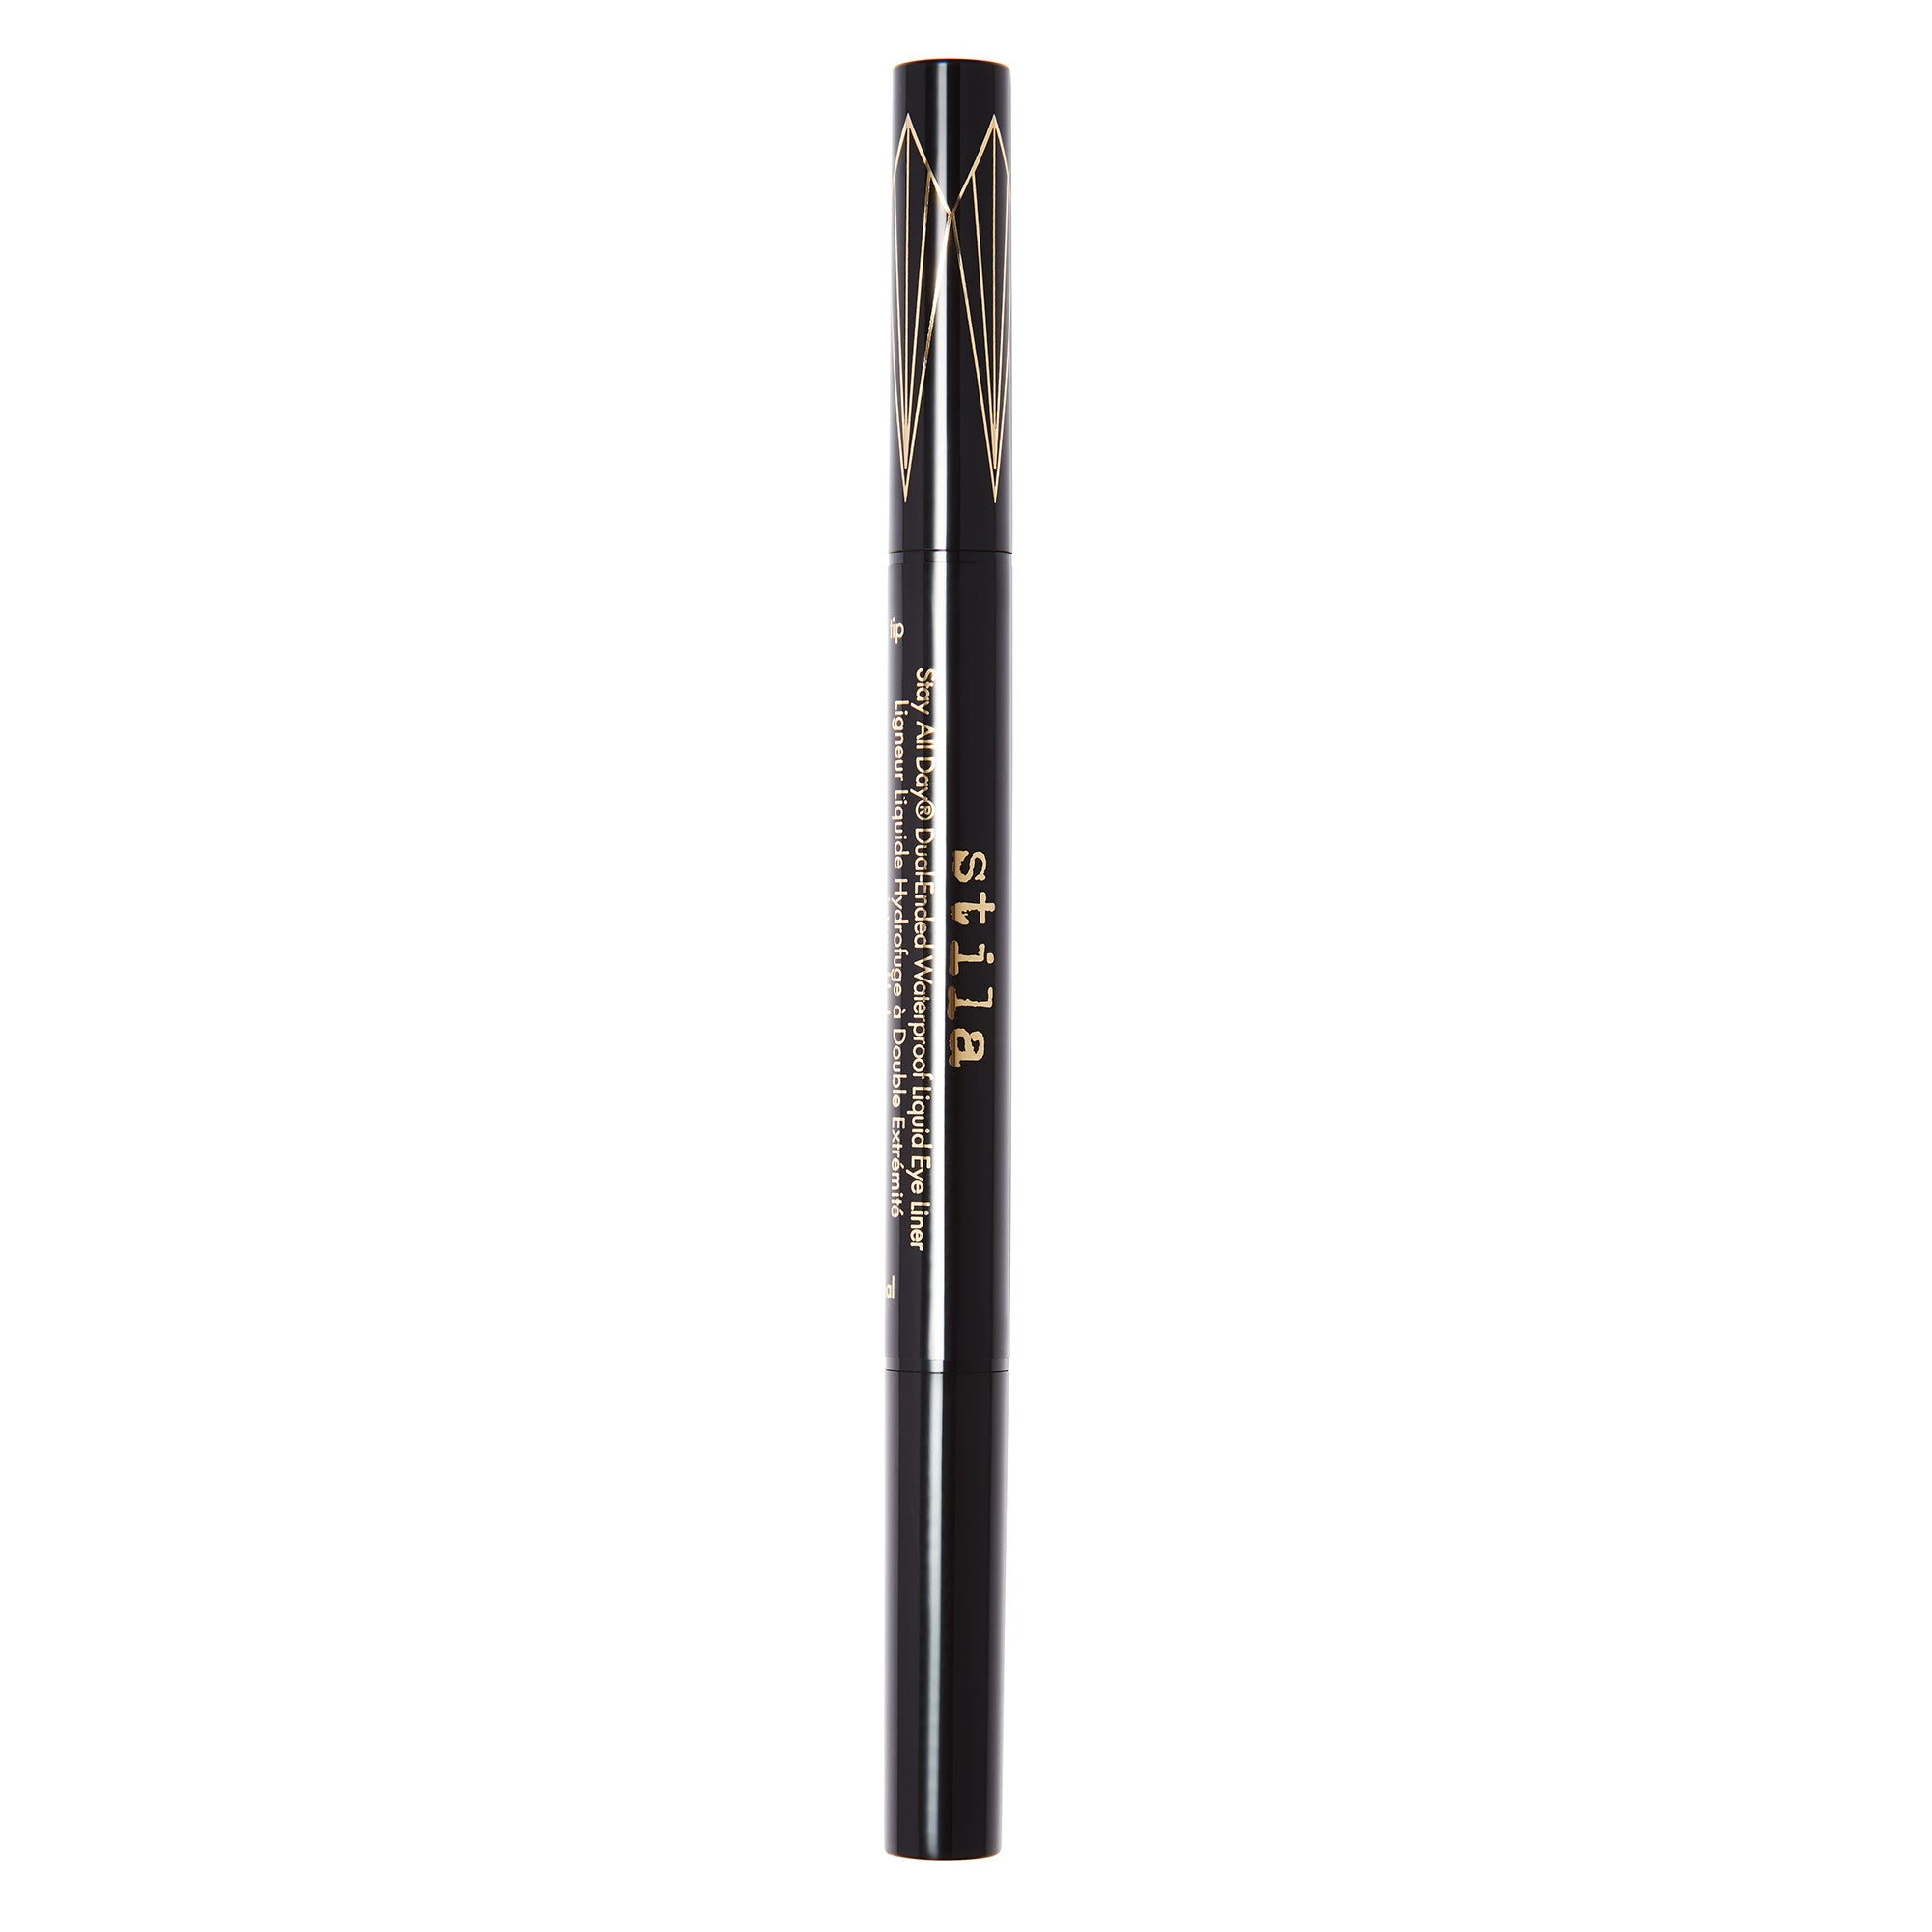 Stila Canada Stay All Day® Dual-Ended Waterproof Liquid Eye Liner Intense Black